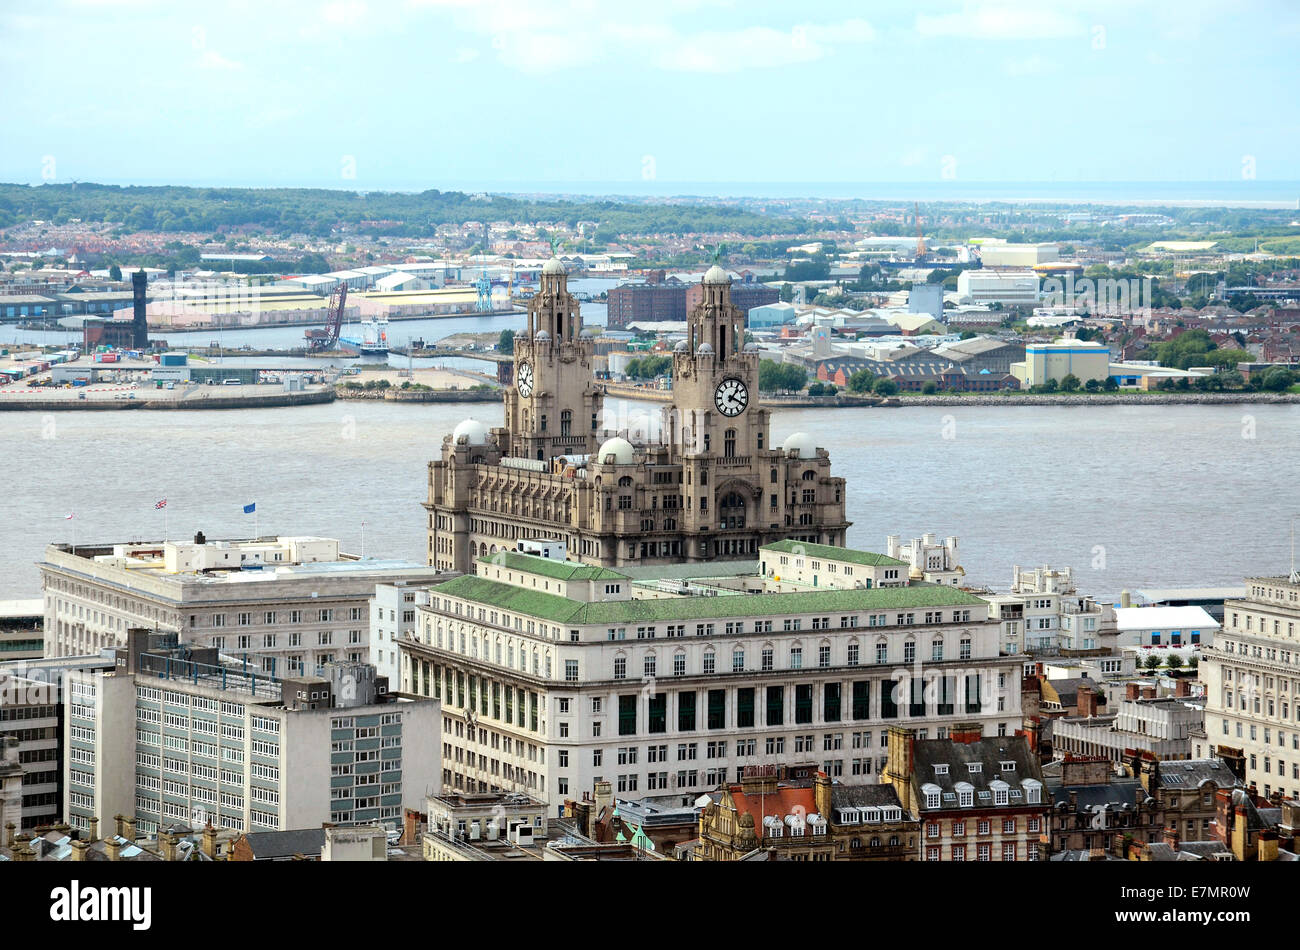 The Liver building and the river Mersey viewed from St.Georges tower in the city centre of Liverpool, England, Uk - Stock Image